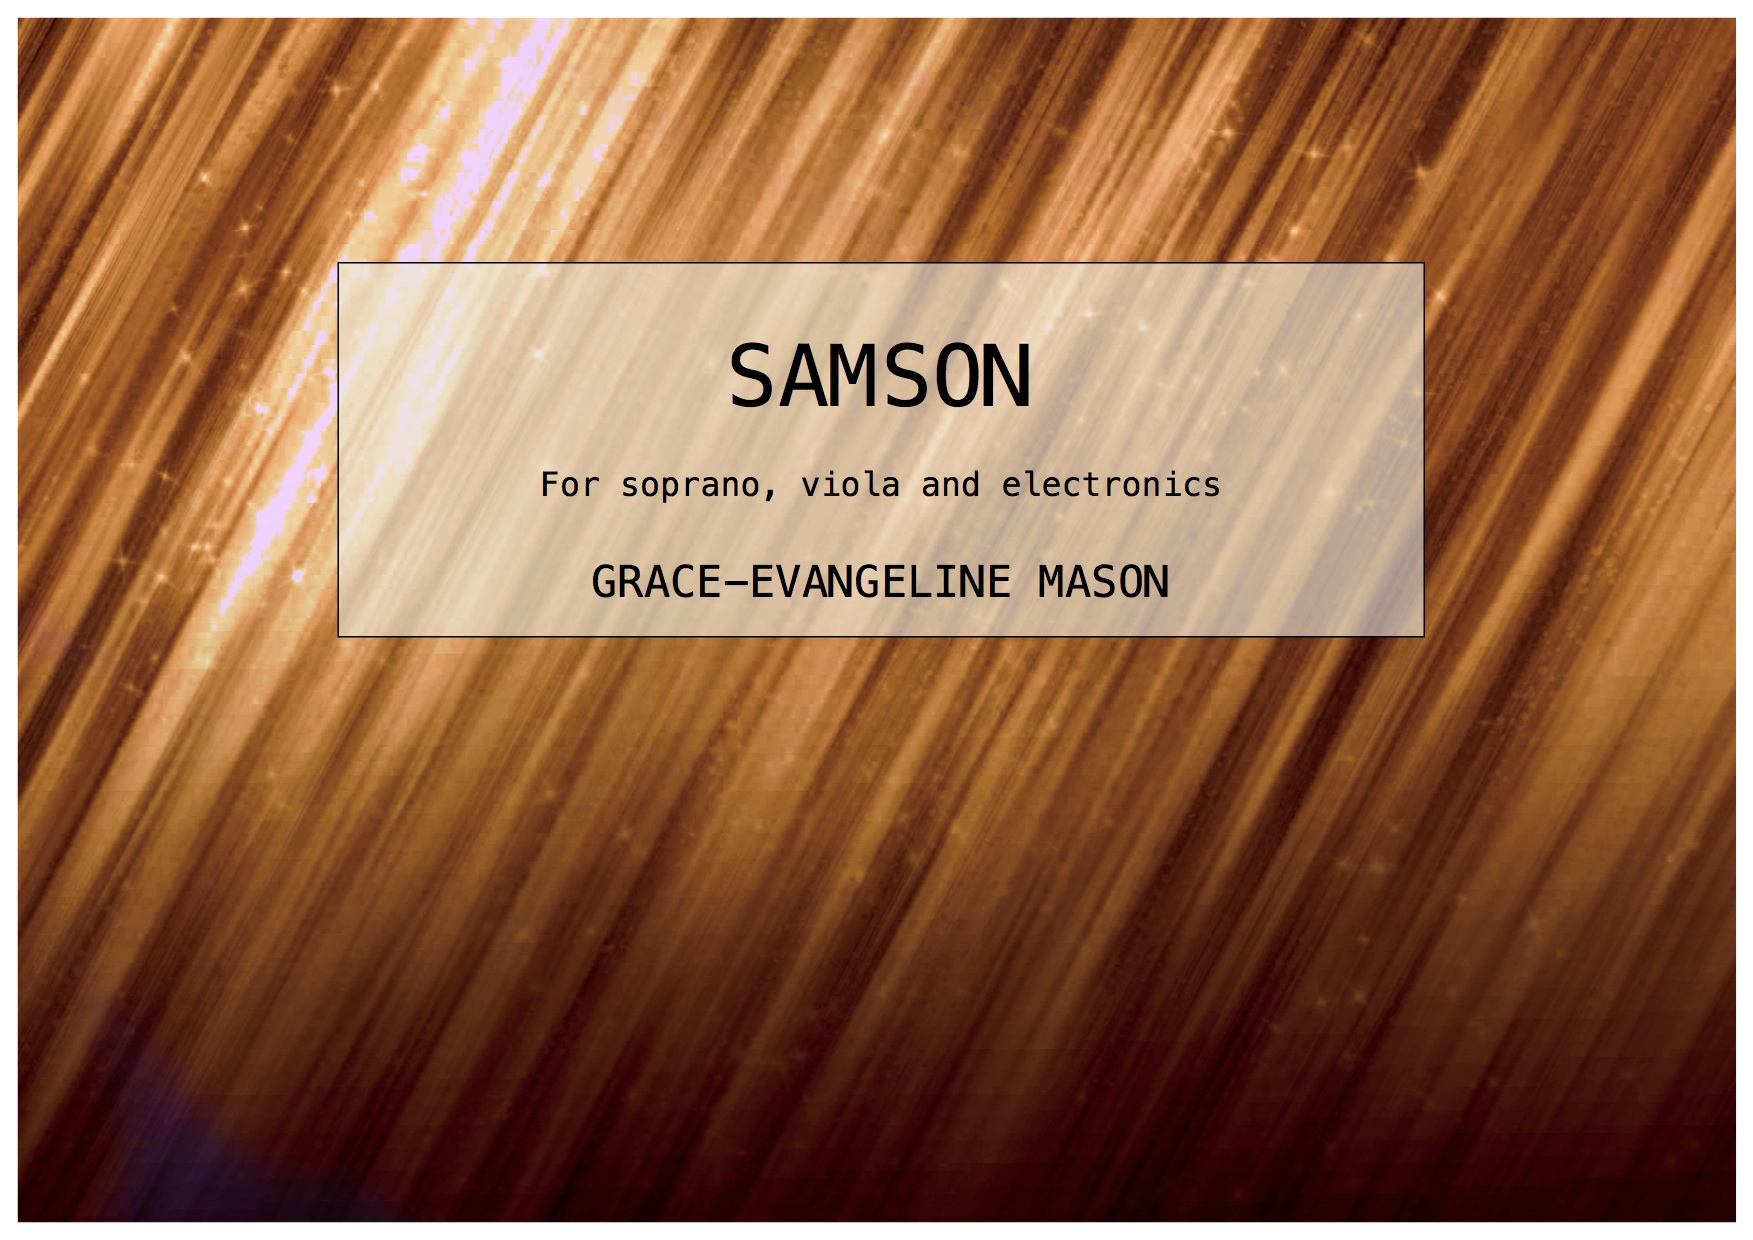 'SAMSON' (2016) - for soprano, viola and electronicsDuration: 6'First performed at the Royal Northern College of Music 'Rosamond Prize' Concert in collaboration with the Manchester Writing School.Winner of the Rosamond Prize 2016.'Samson is a short piece based on the poem by the same name by Elisabeth Sennitt Clough. The voice takes on the role of a Biblical Delilah figure by acting as an alluring character at the outset with a growing intensity that leads to some more hostile moments later in the piece, as the motives of her actions become more apparent. The viola and electronics seek to create an underlying soundworld of the beautiful simplicity of the character at the beginning, which becomes tenser in accordance with the voice. The viola part is also present in the electronics to highlight the close relations between Samson and Delilah, which strays and converges.' ©G.E.M.2016©Cover Image: 'SAMSON' by Grace-Evangeline Mason 2016